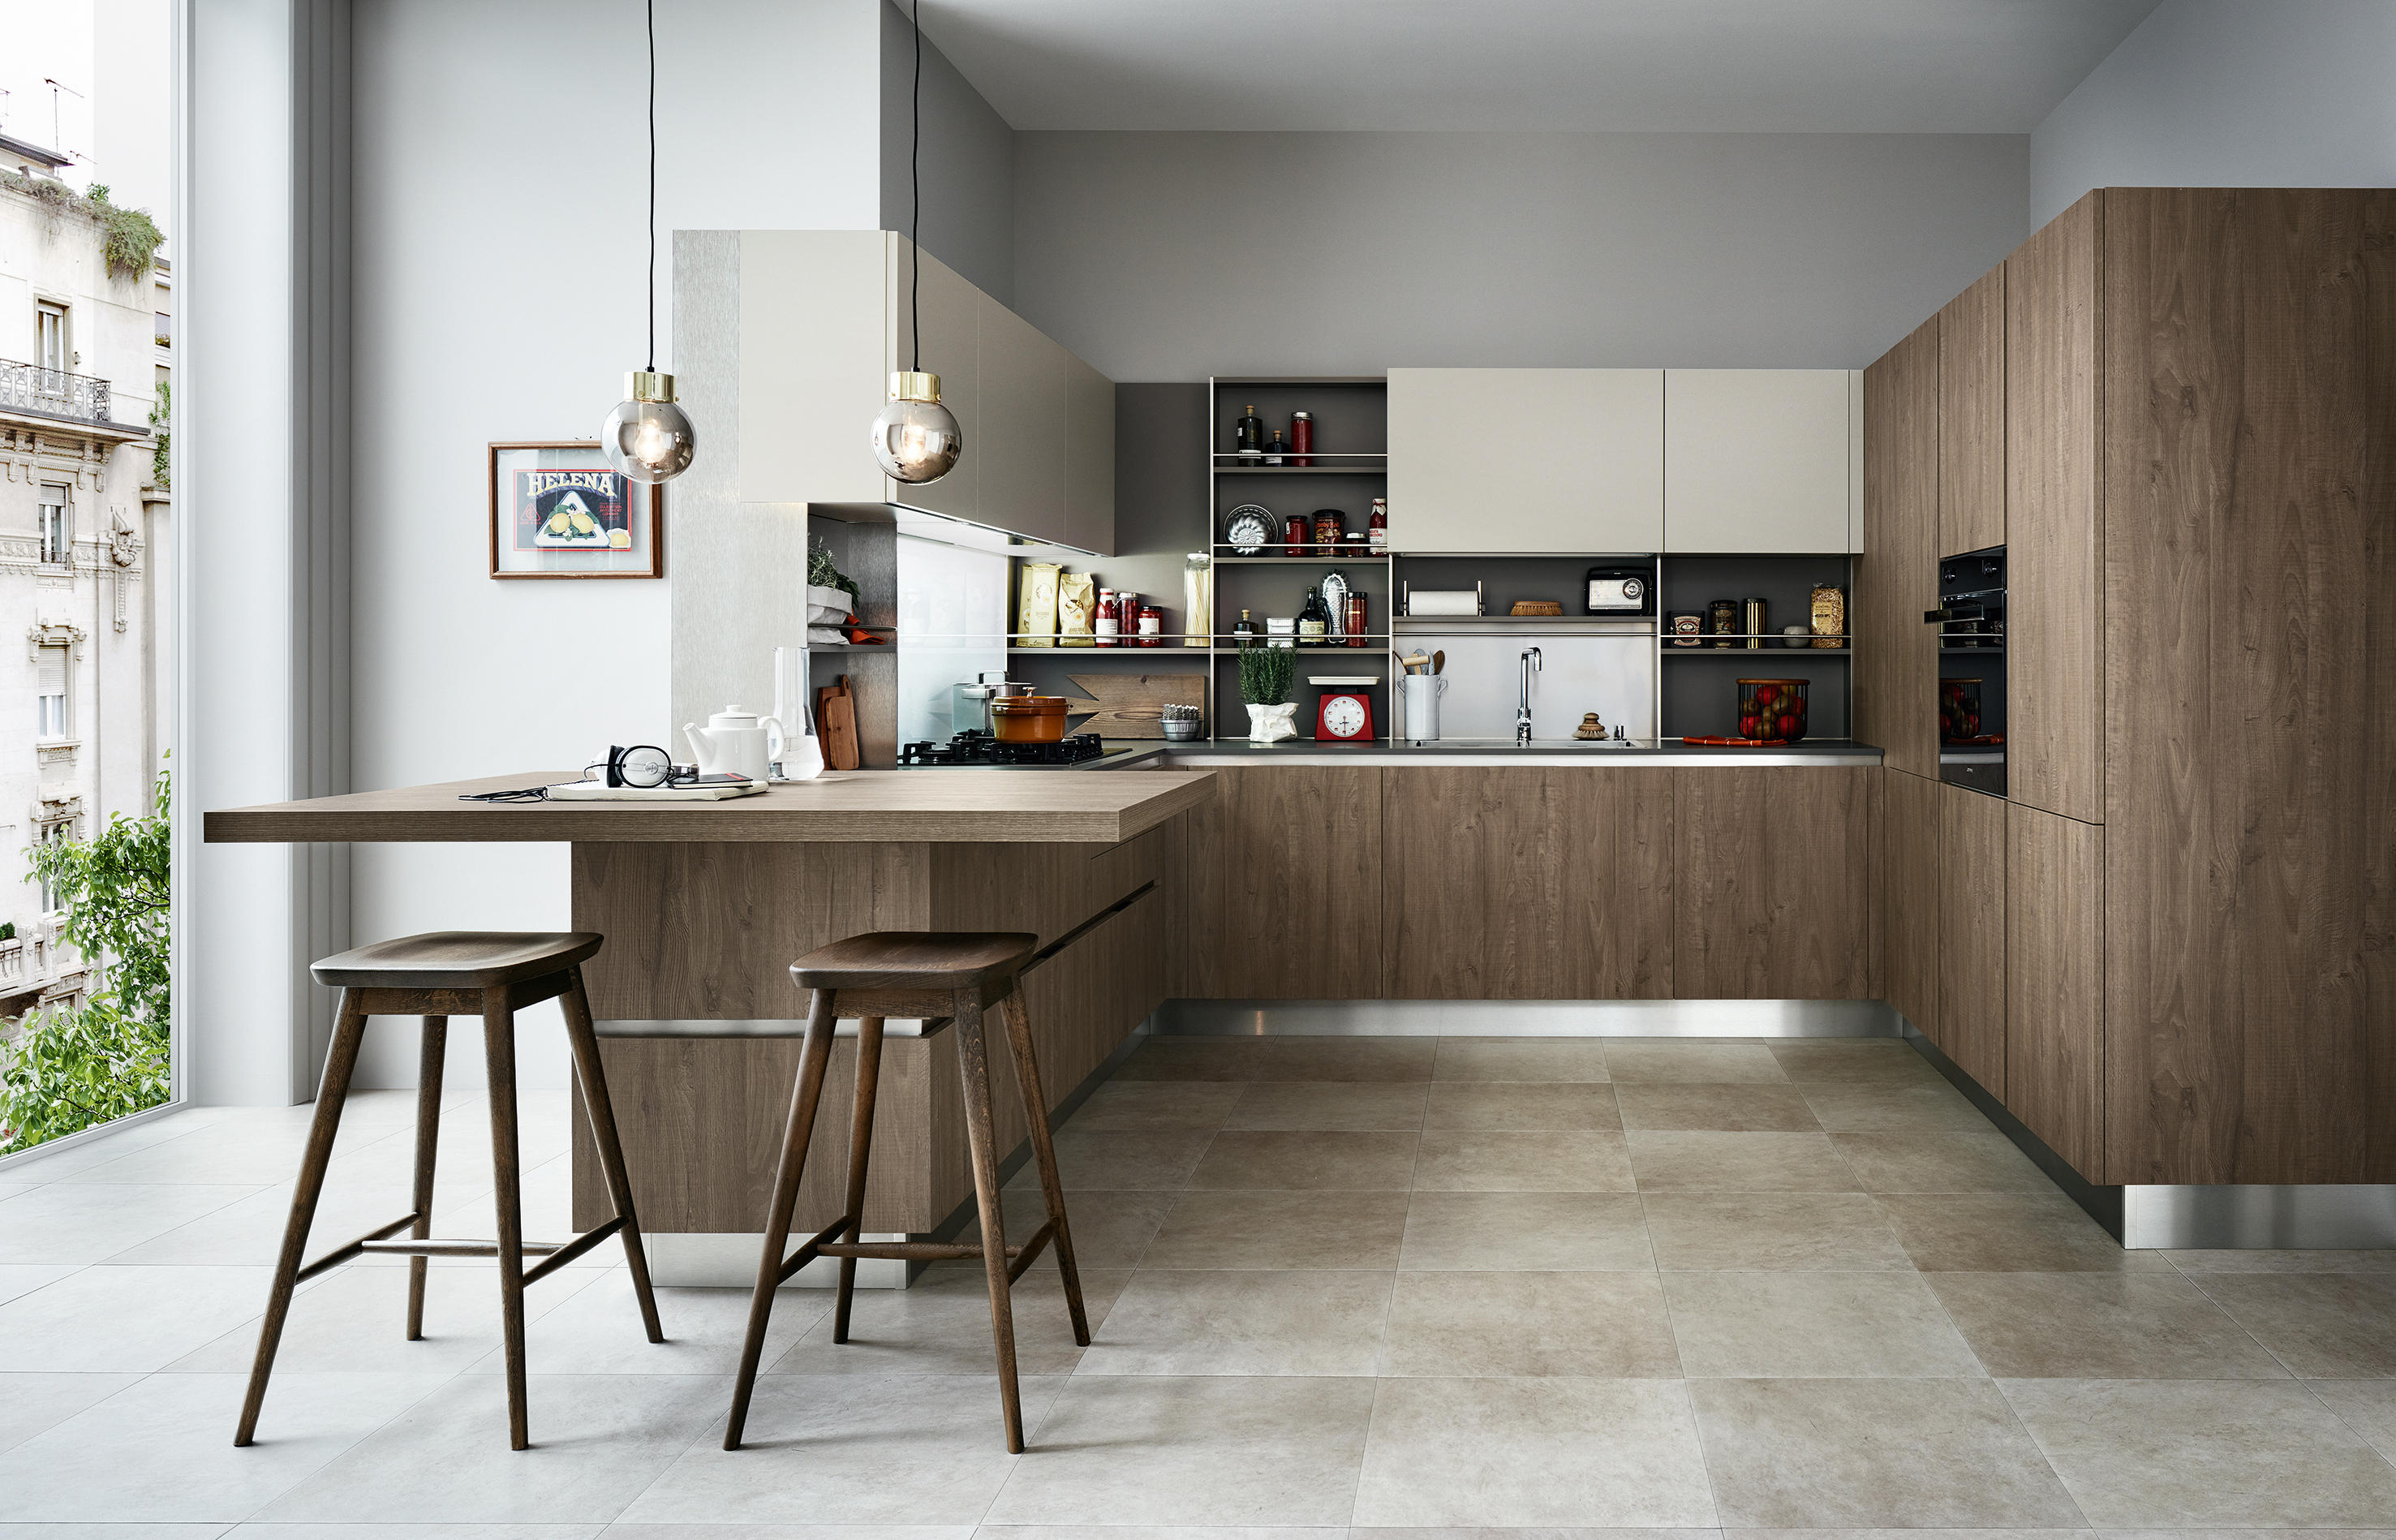 ethica go fitted kitchens from veneta cucine architonic. Black Bedroom Furniture Sets. Home Design Ideas